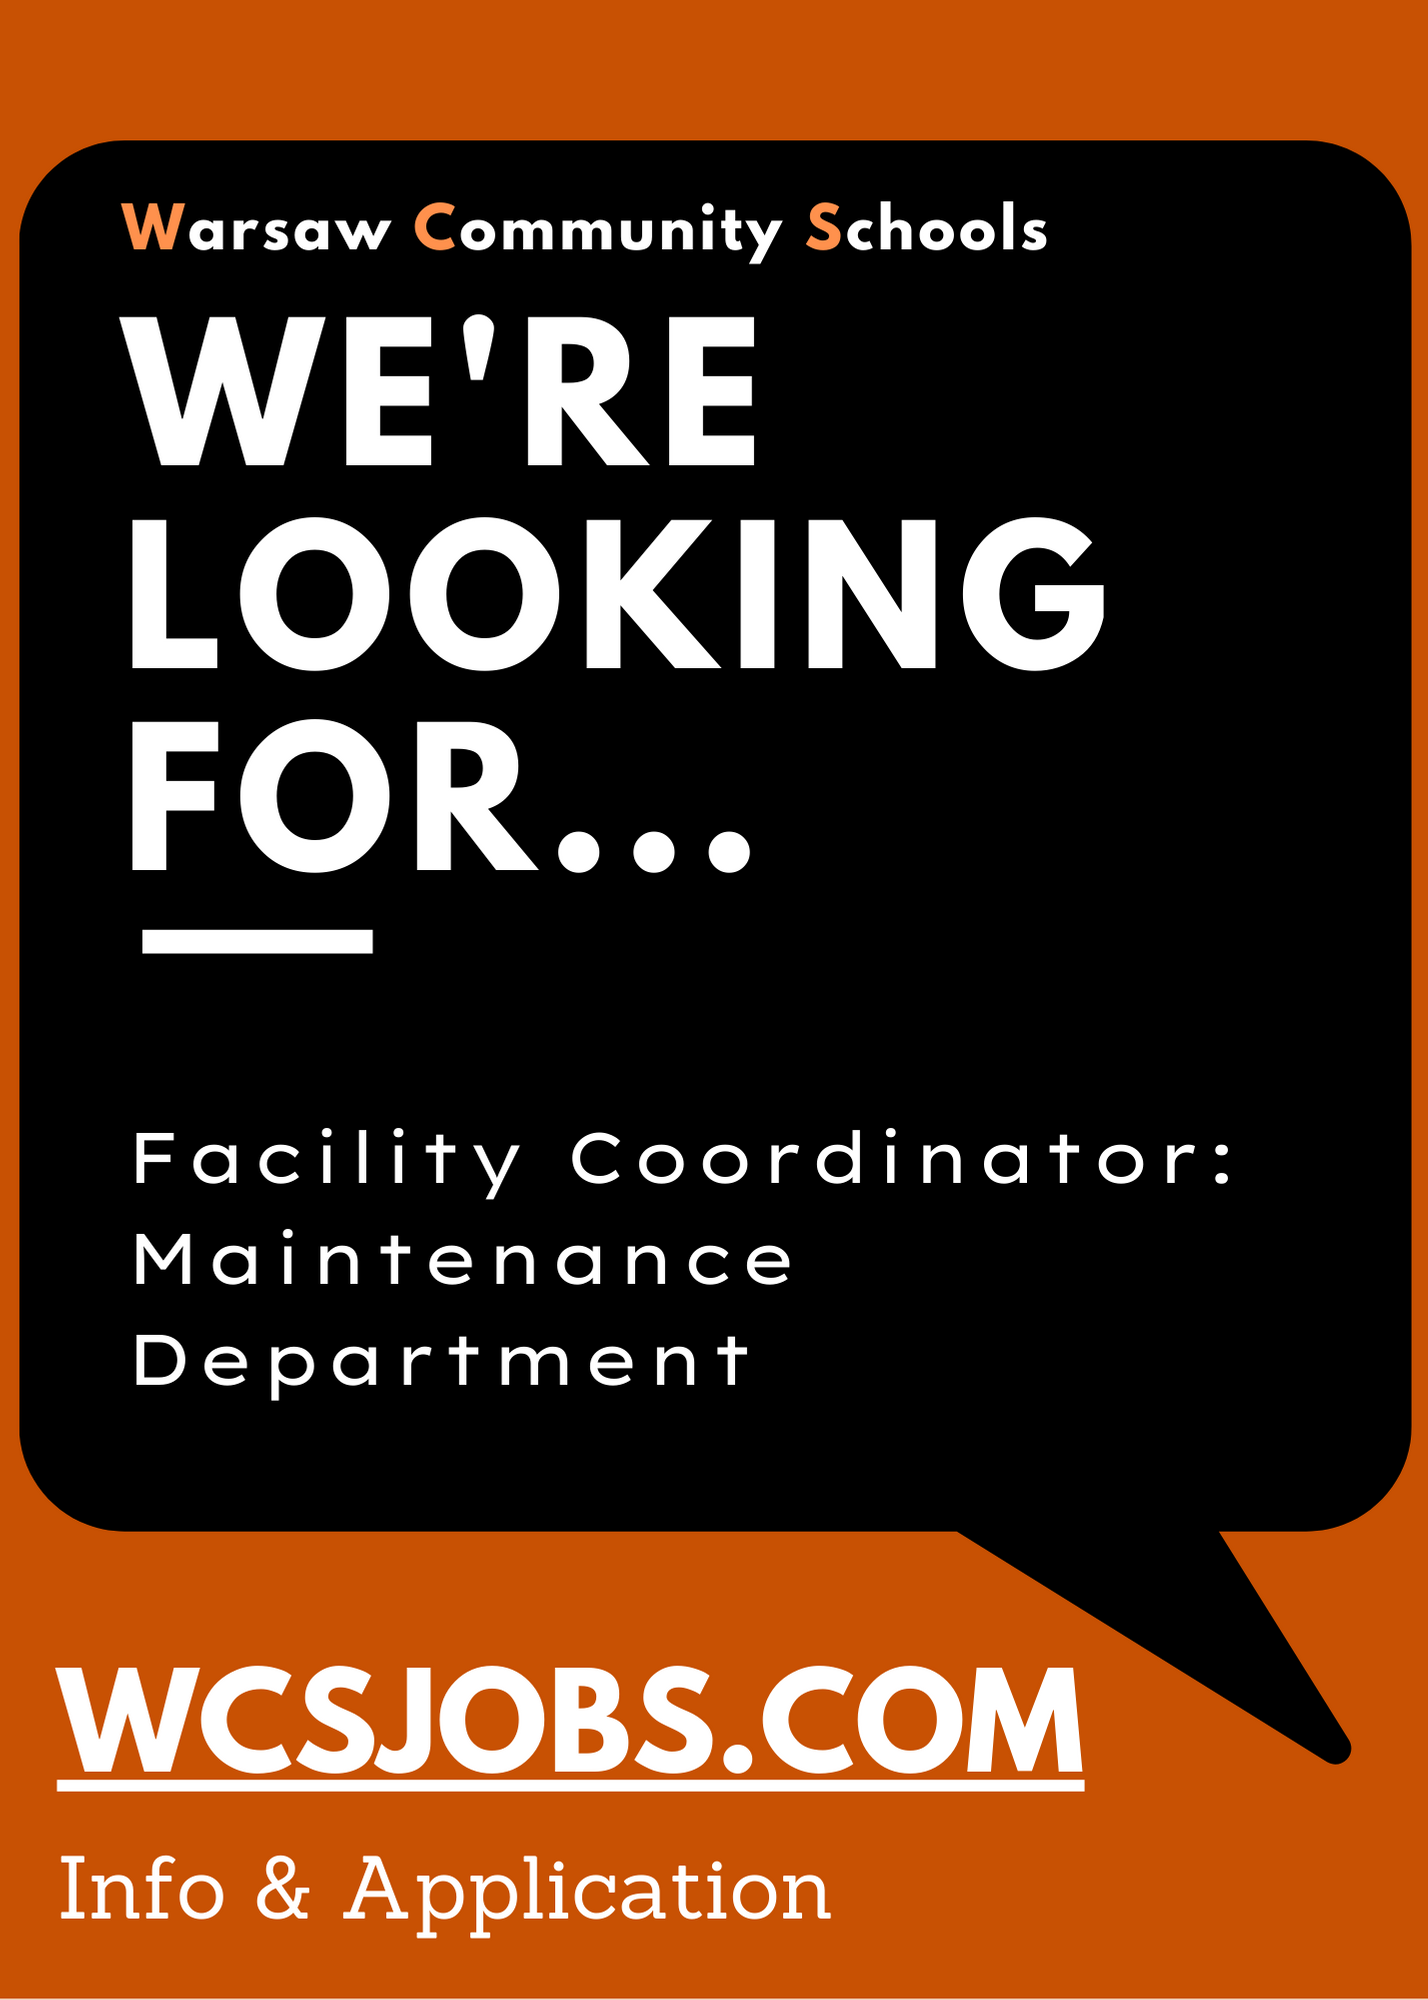 We're Looking For...